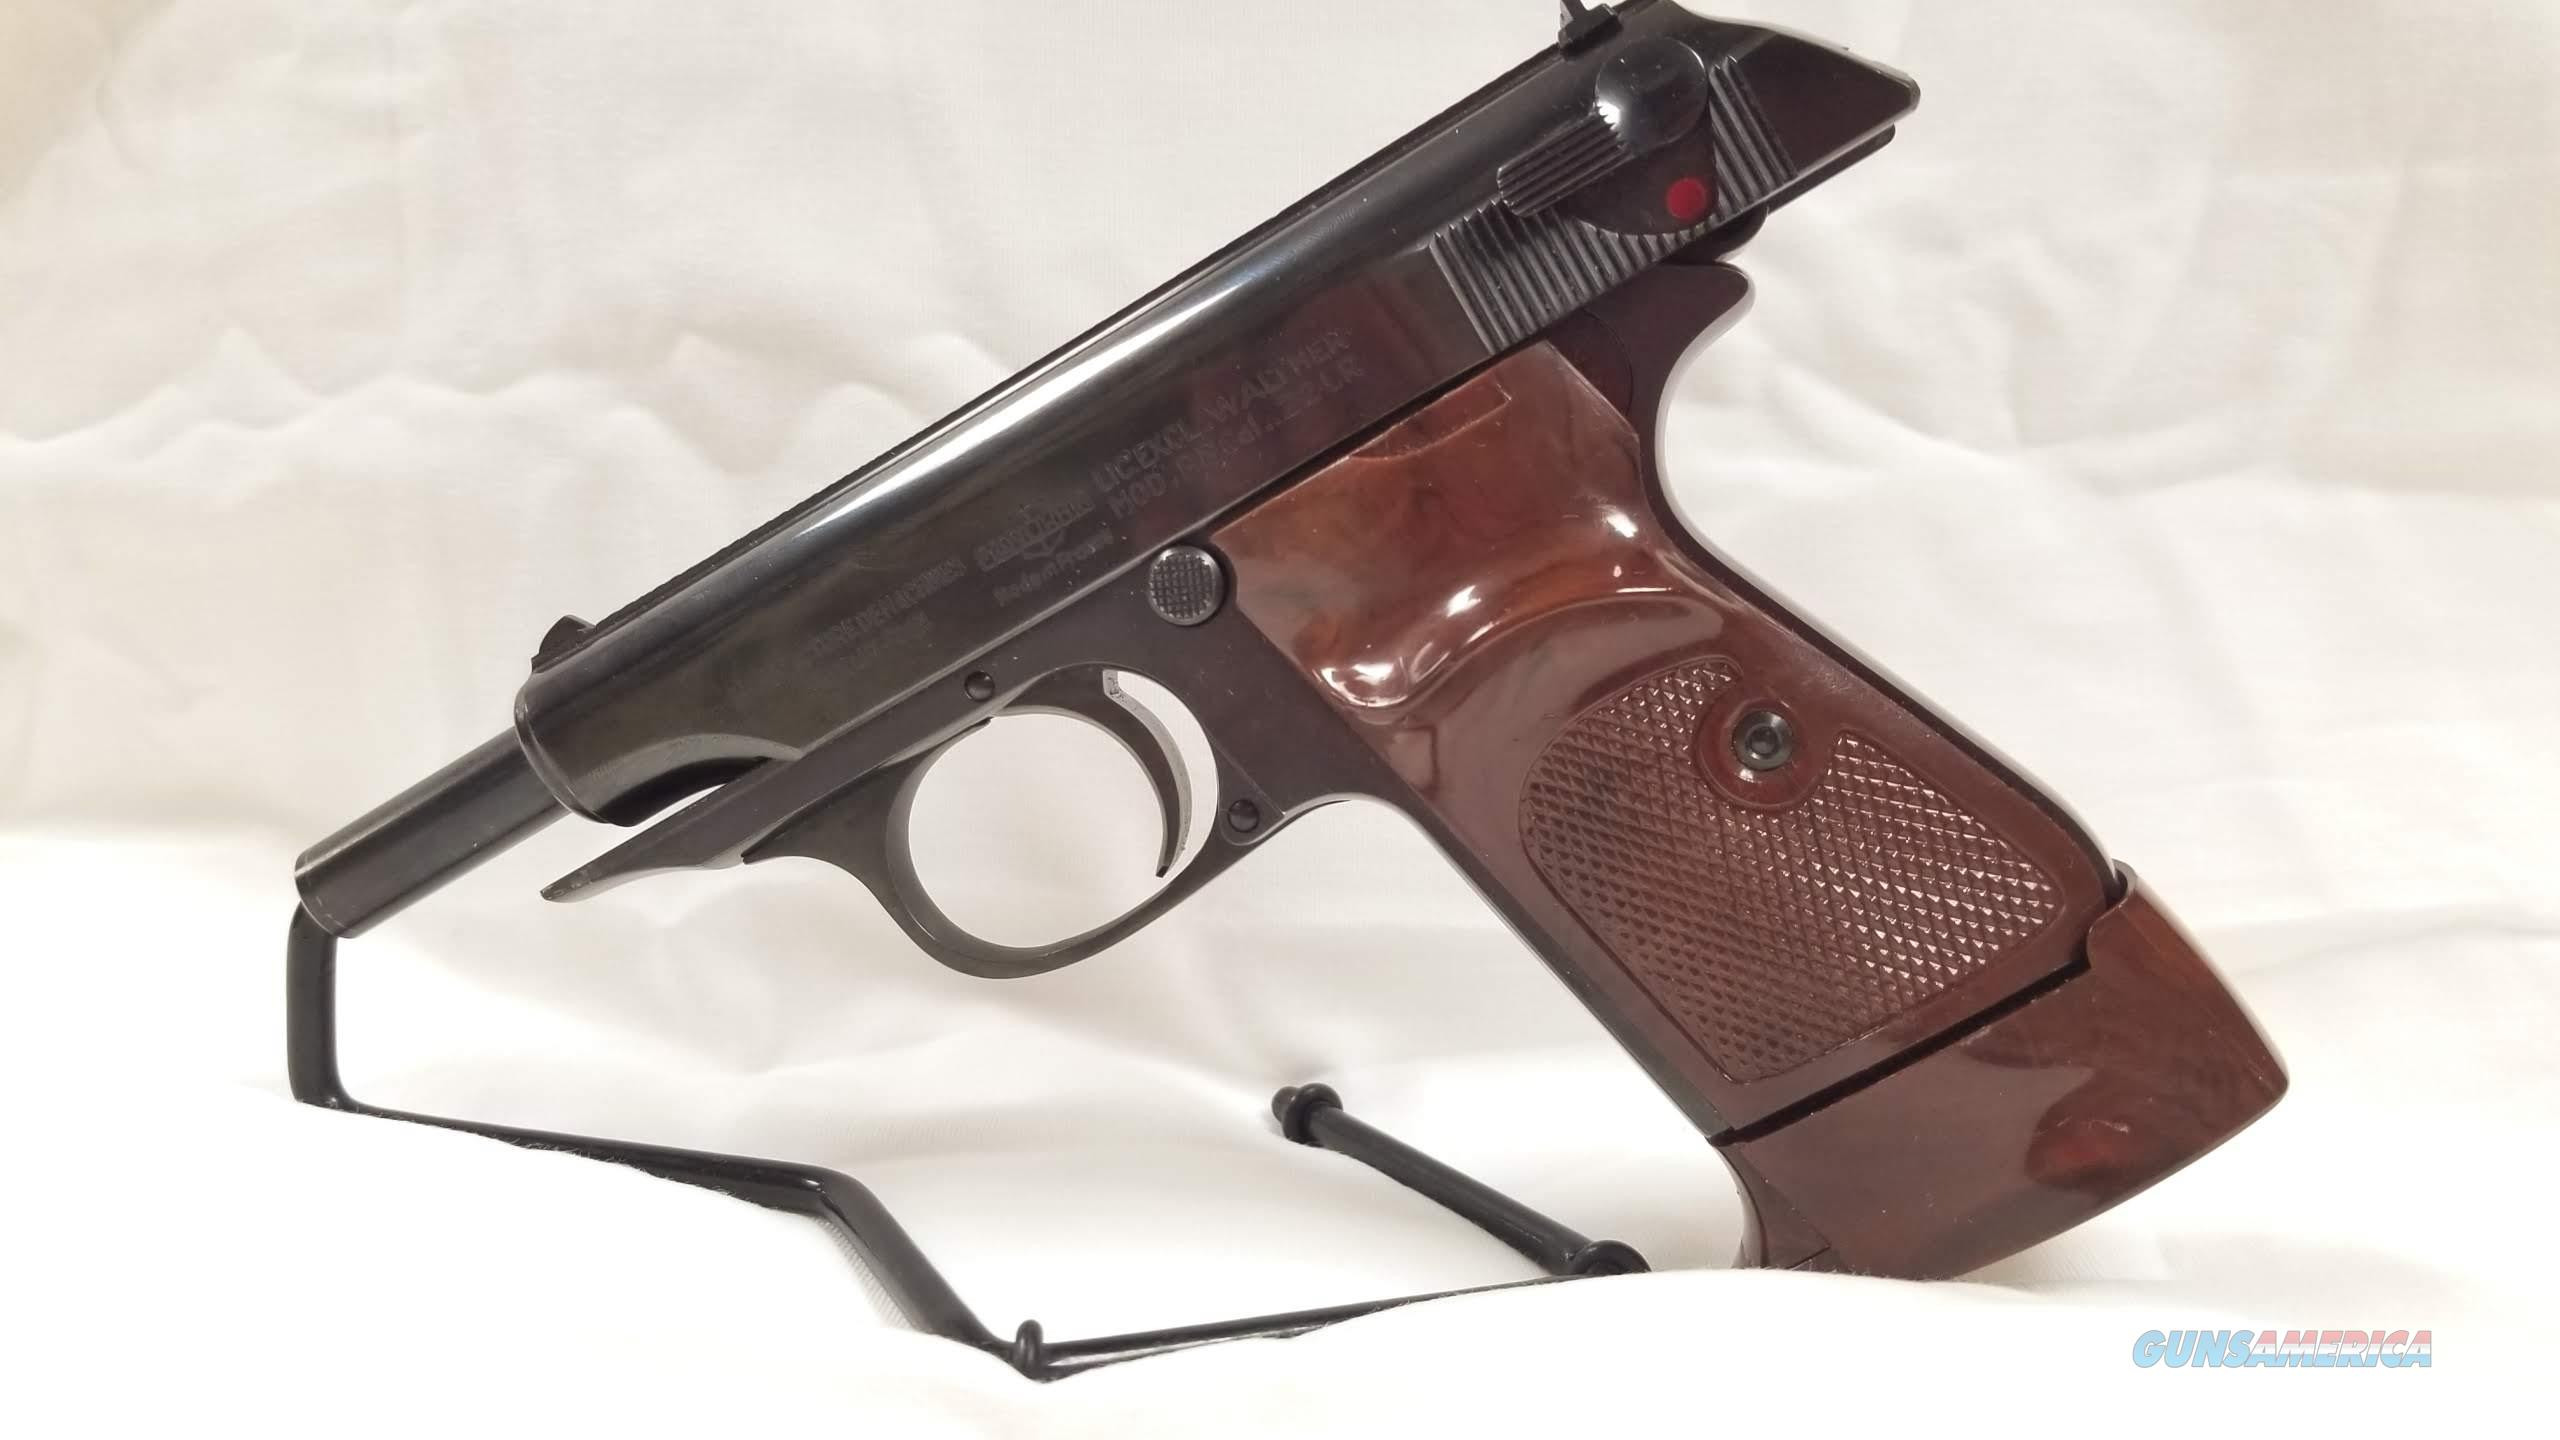 Manurhin Walther PP 22LR  Guns > Pistols > Walther Pistols > Post WWII > Target Pistols